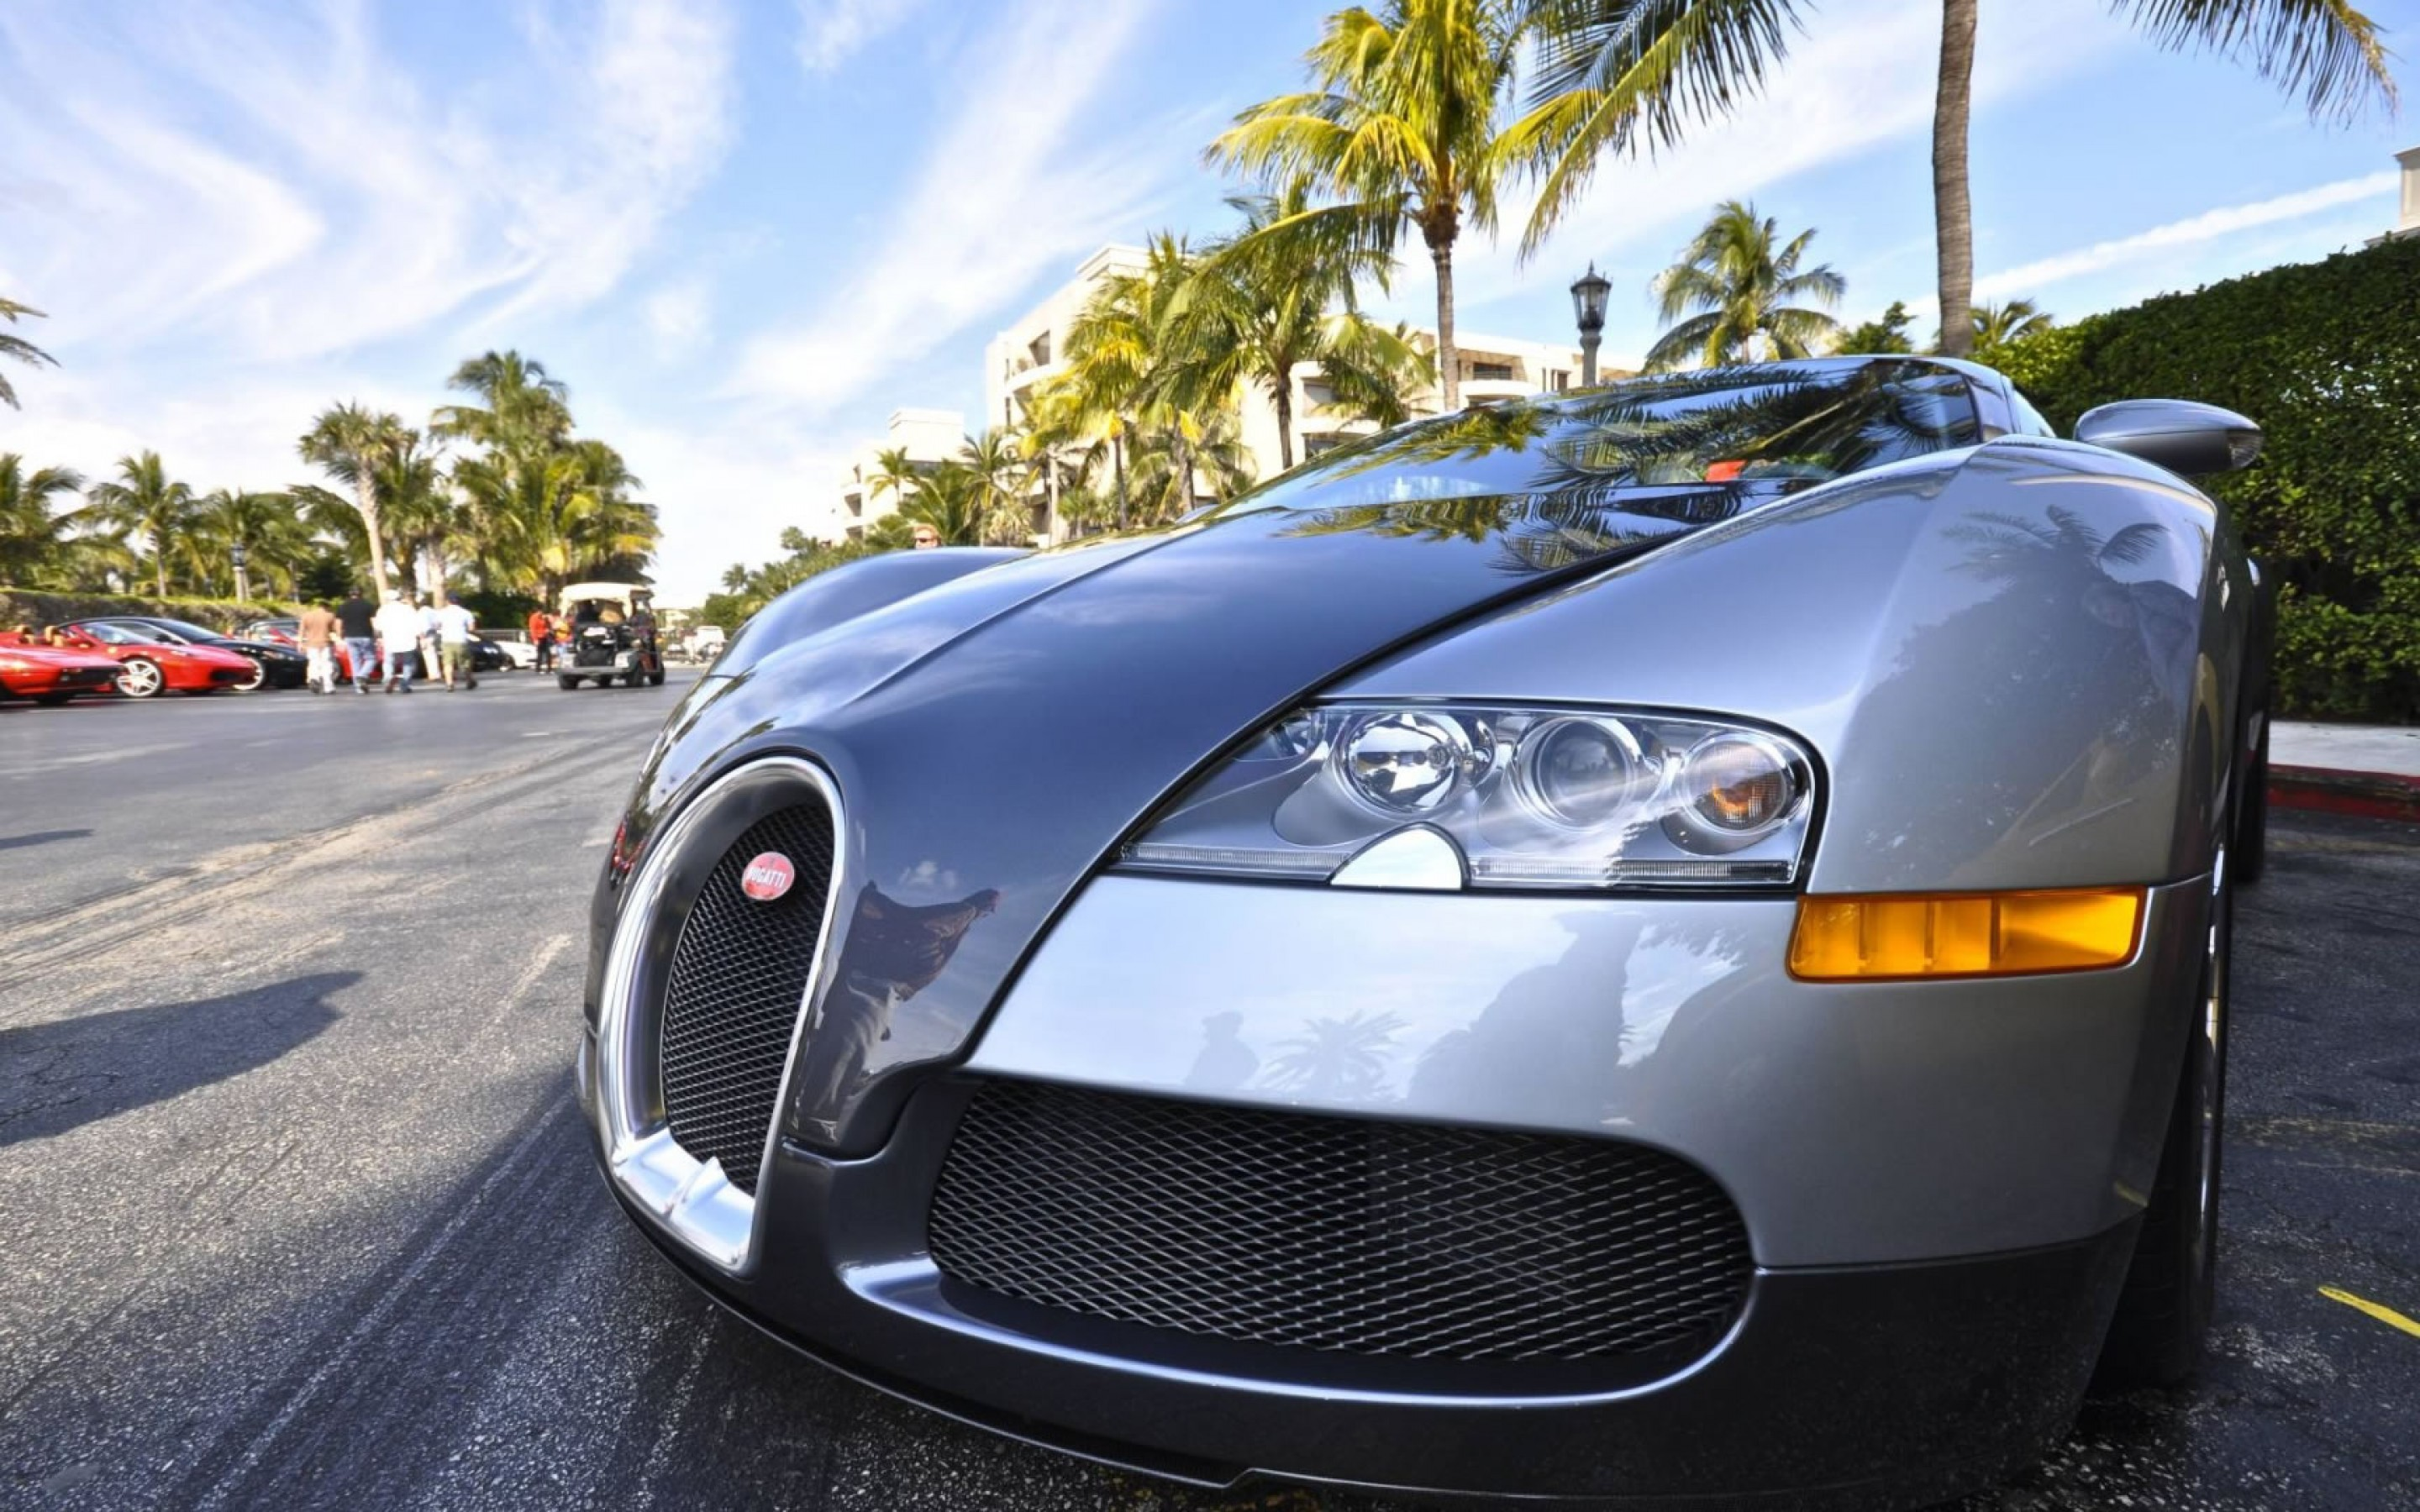 Bugatti Wallpaper Iphone images on o